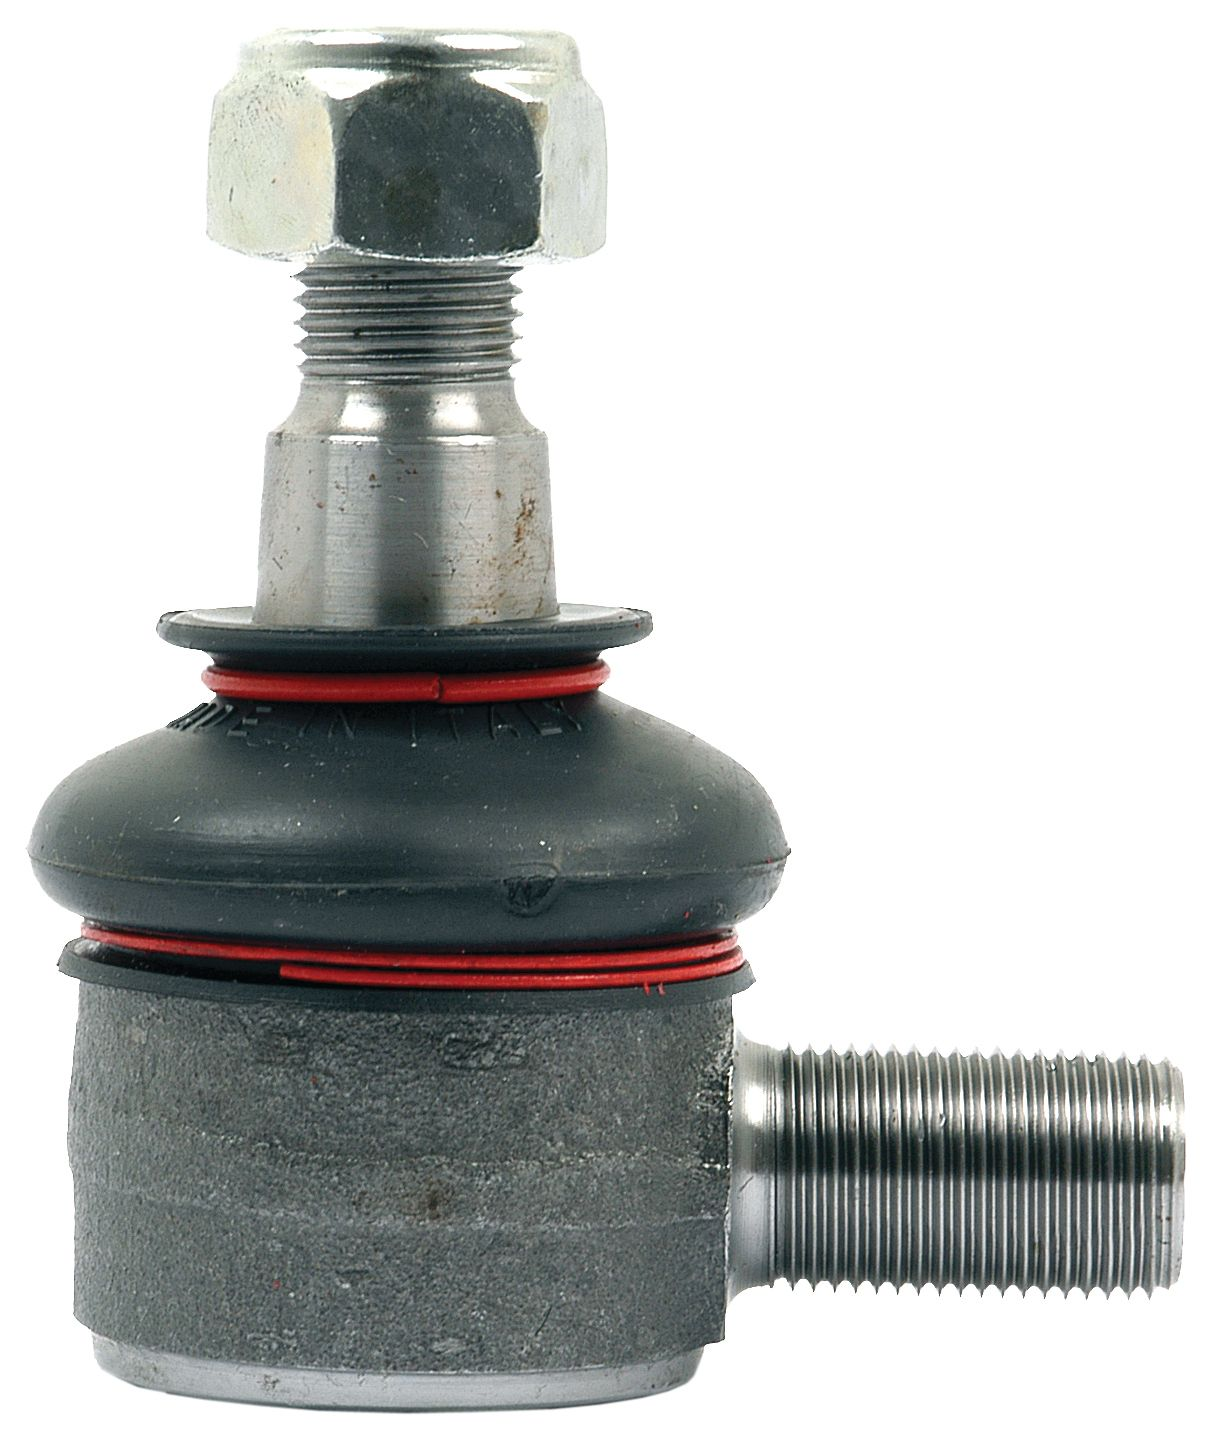 CASE TIE ROD END 63228